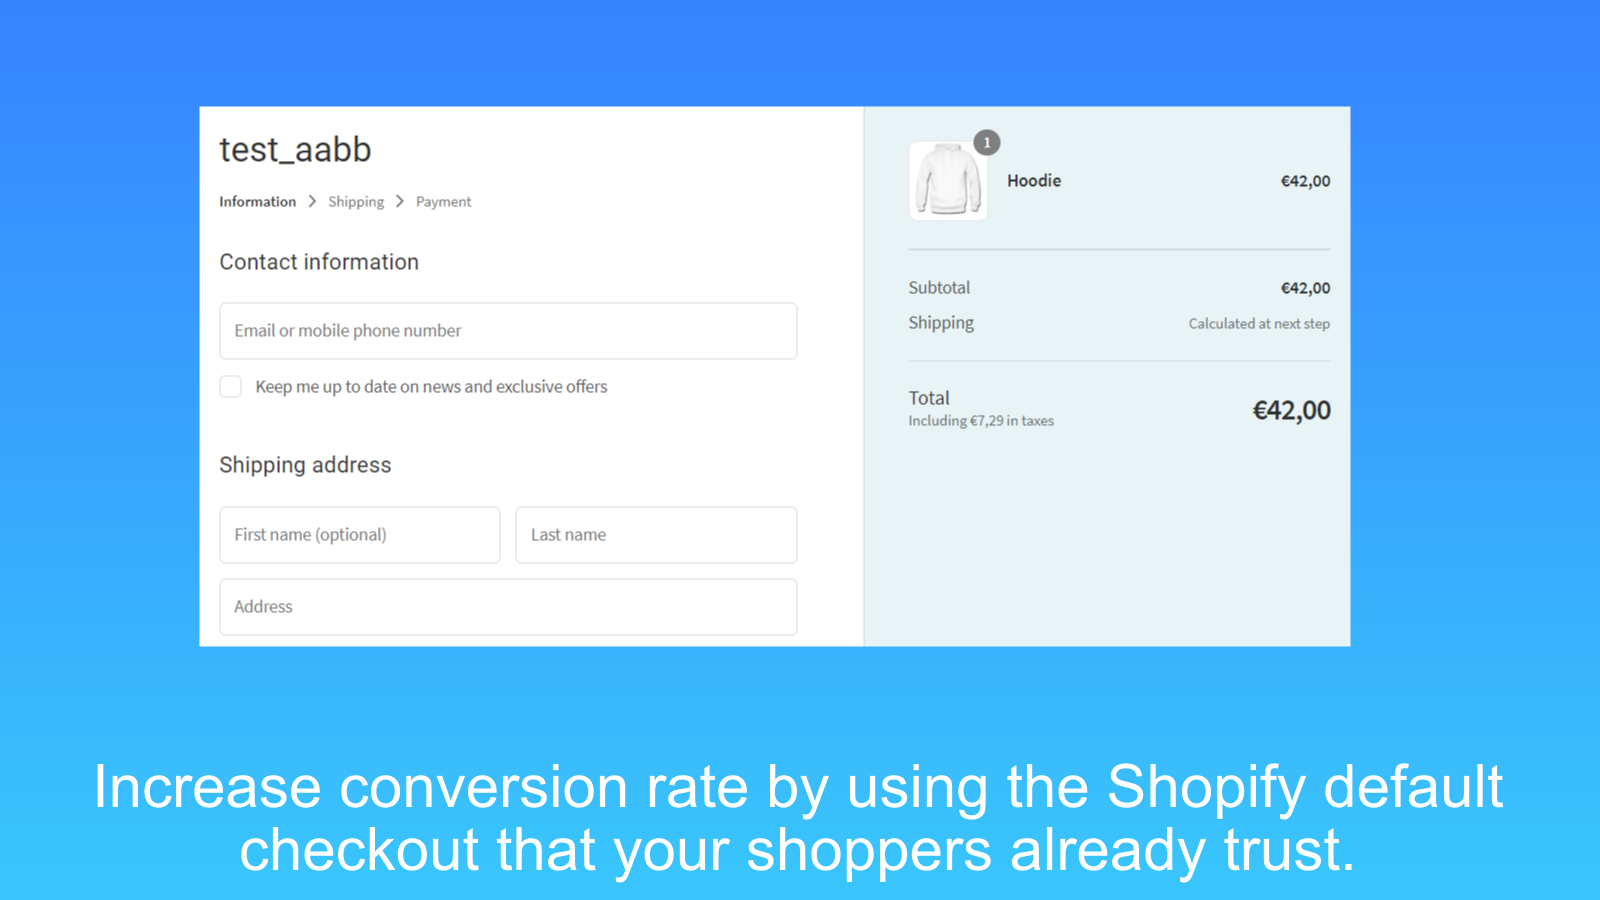 Use Shopify Default checkout that shoppers already trust.